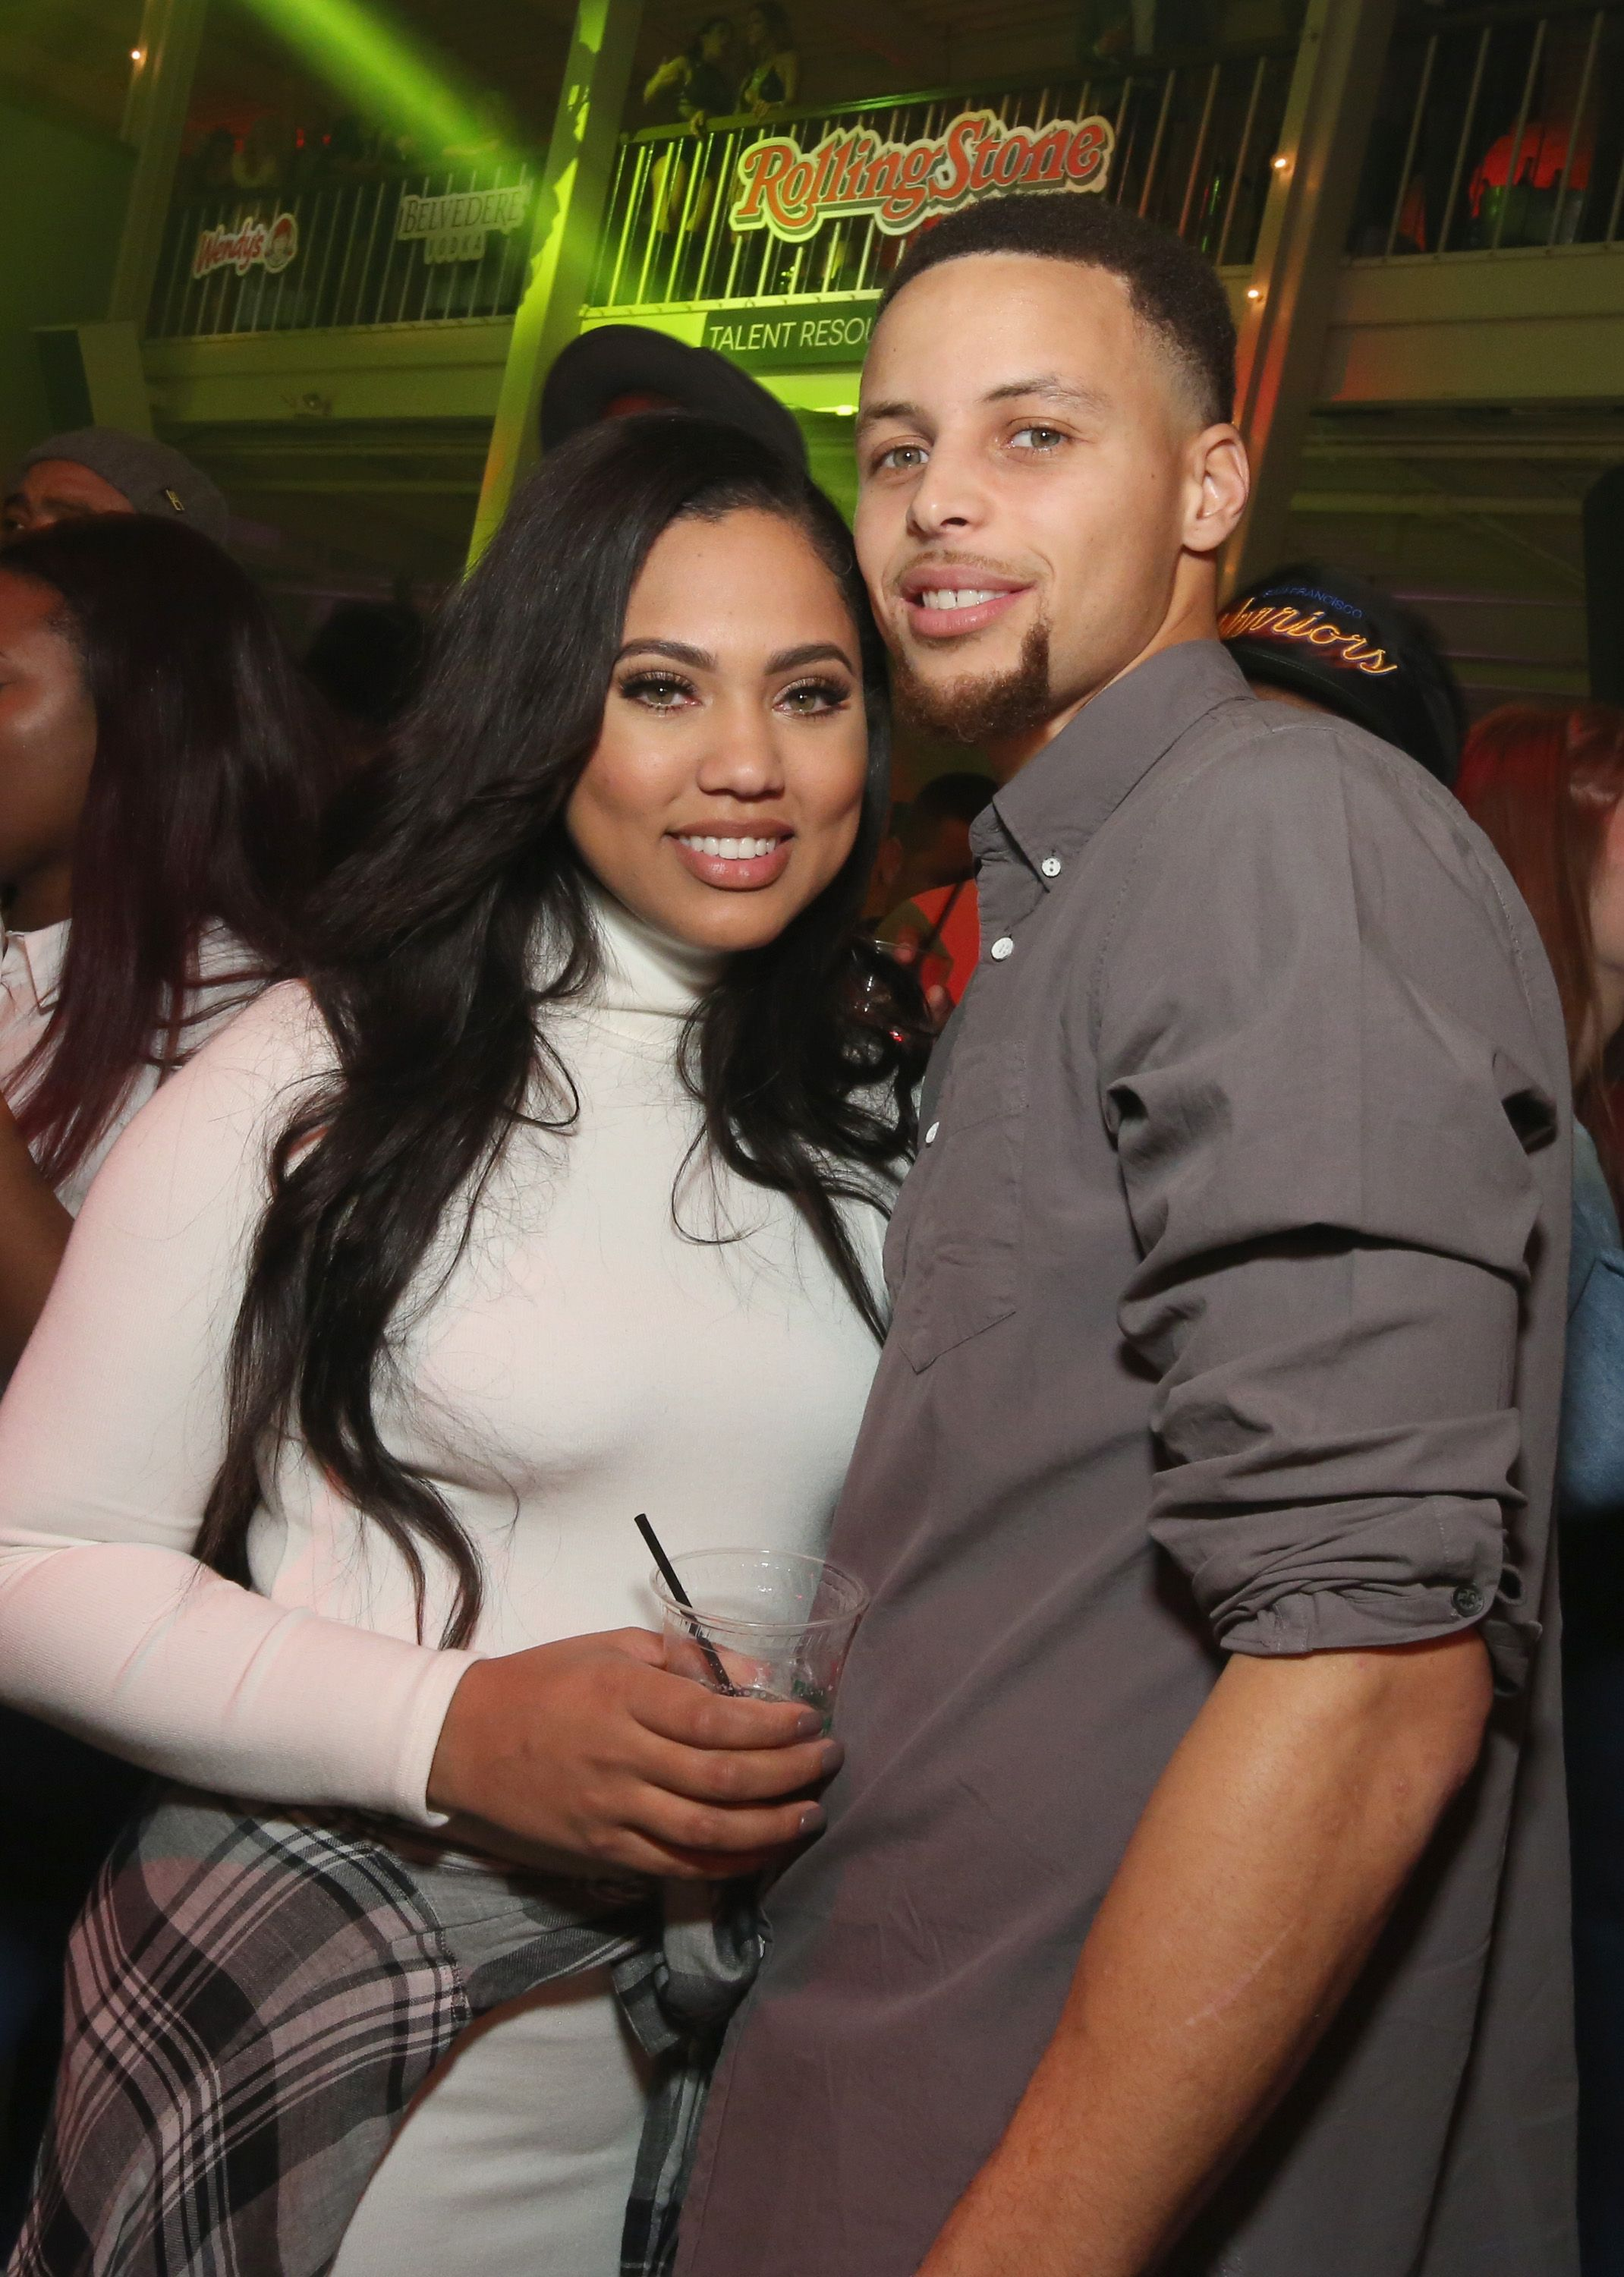 Steph and Ayesha Curry at Rolling Stone Live SF on February 7, 2016 in San Francisco. | Photo: Getty Images